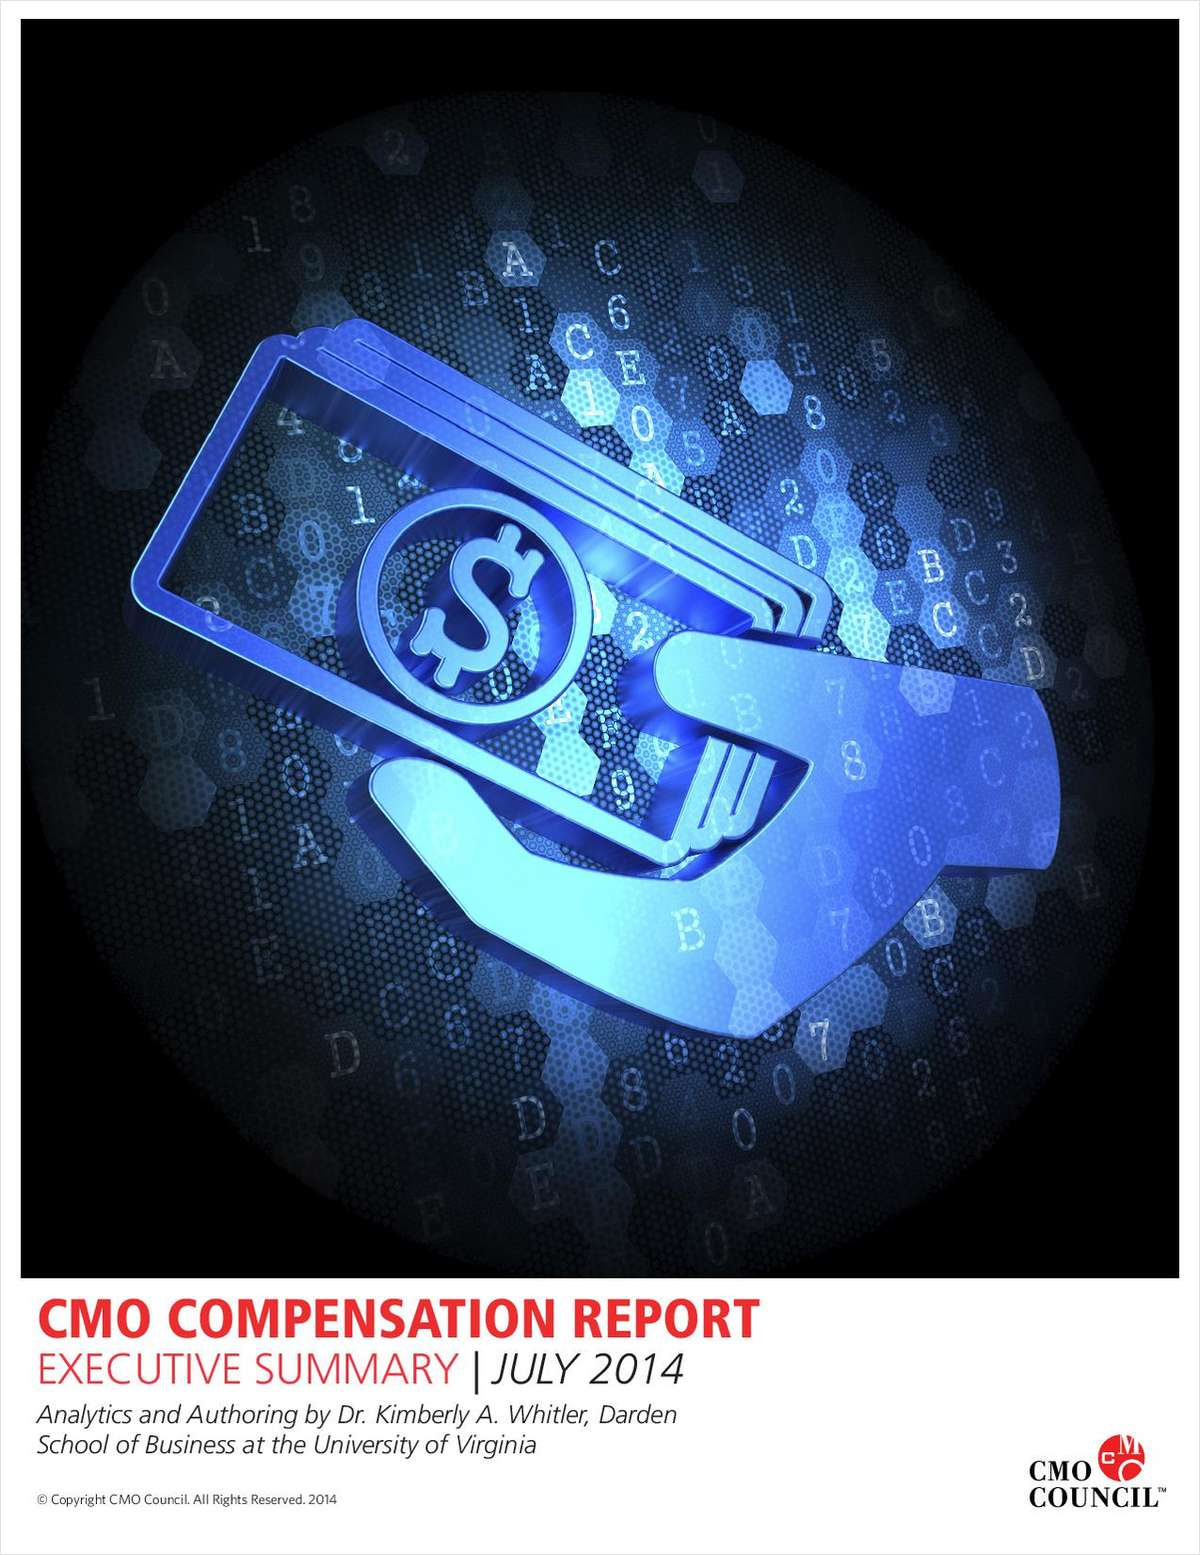 Milestone CMO Compensation Report From CMO Council